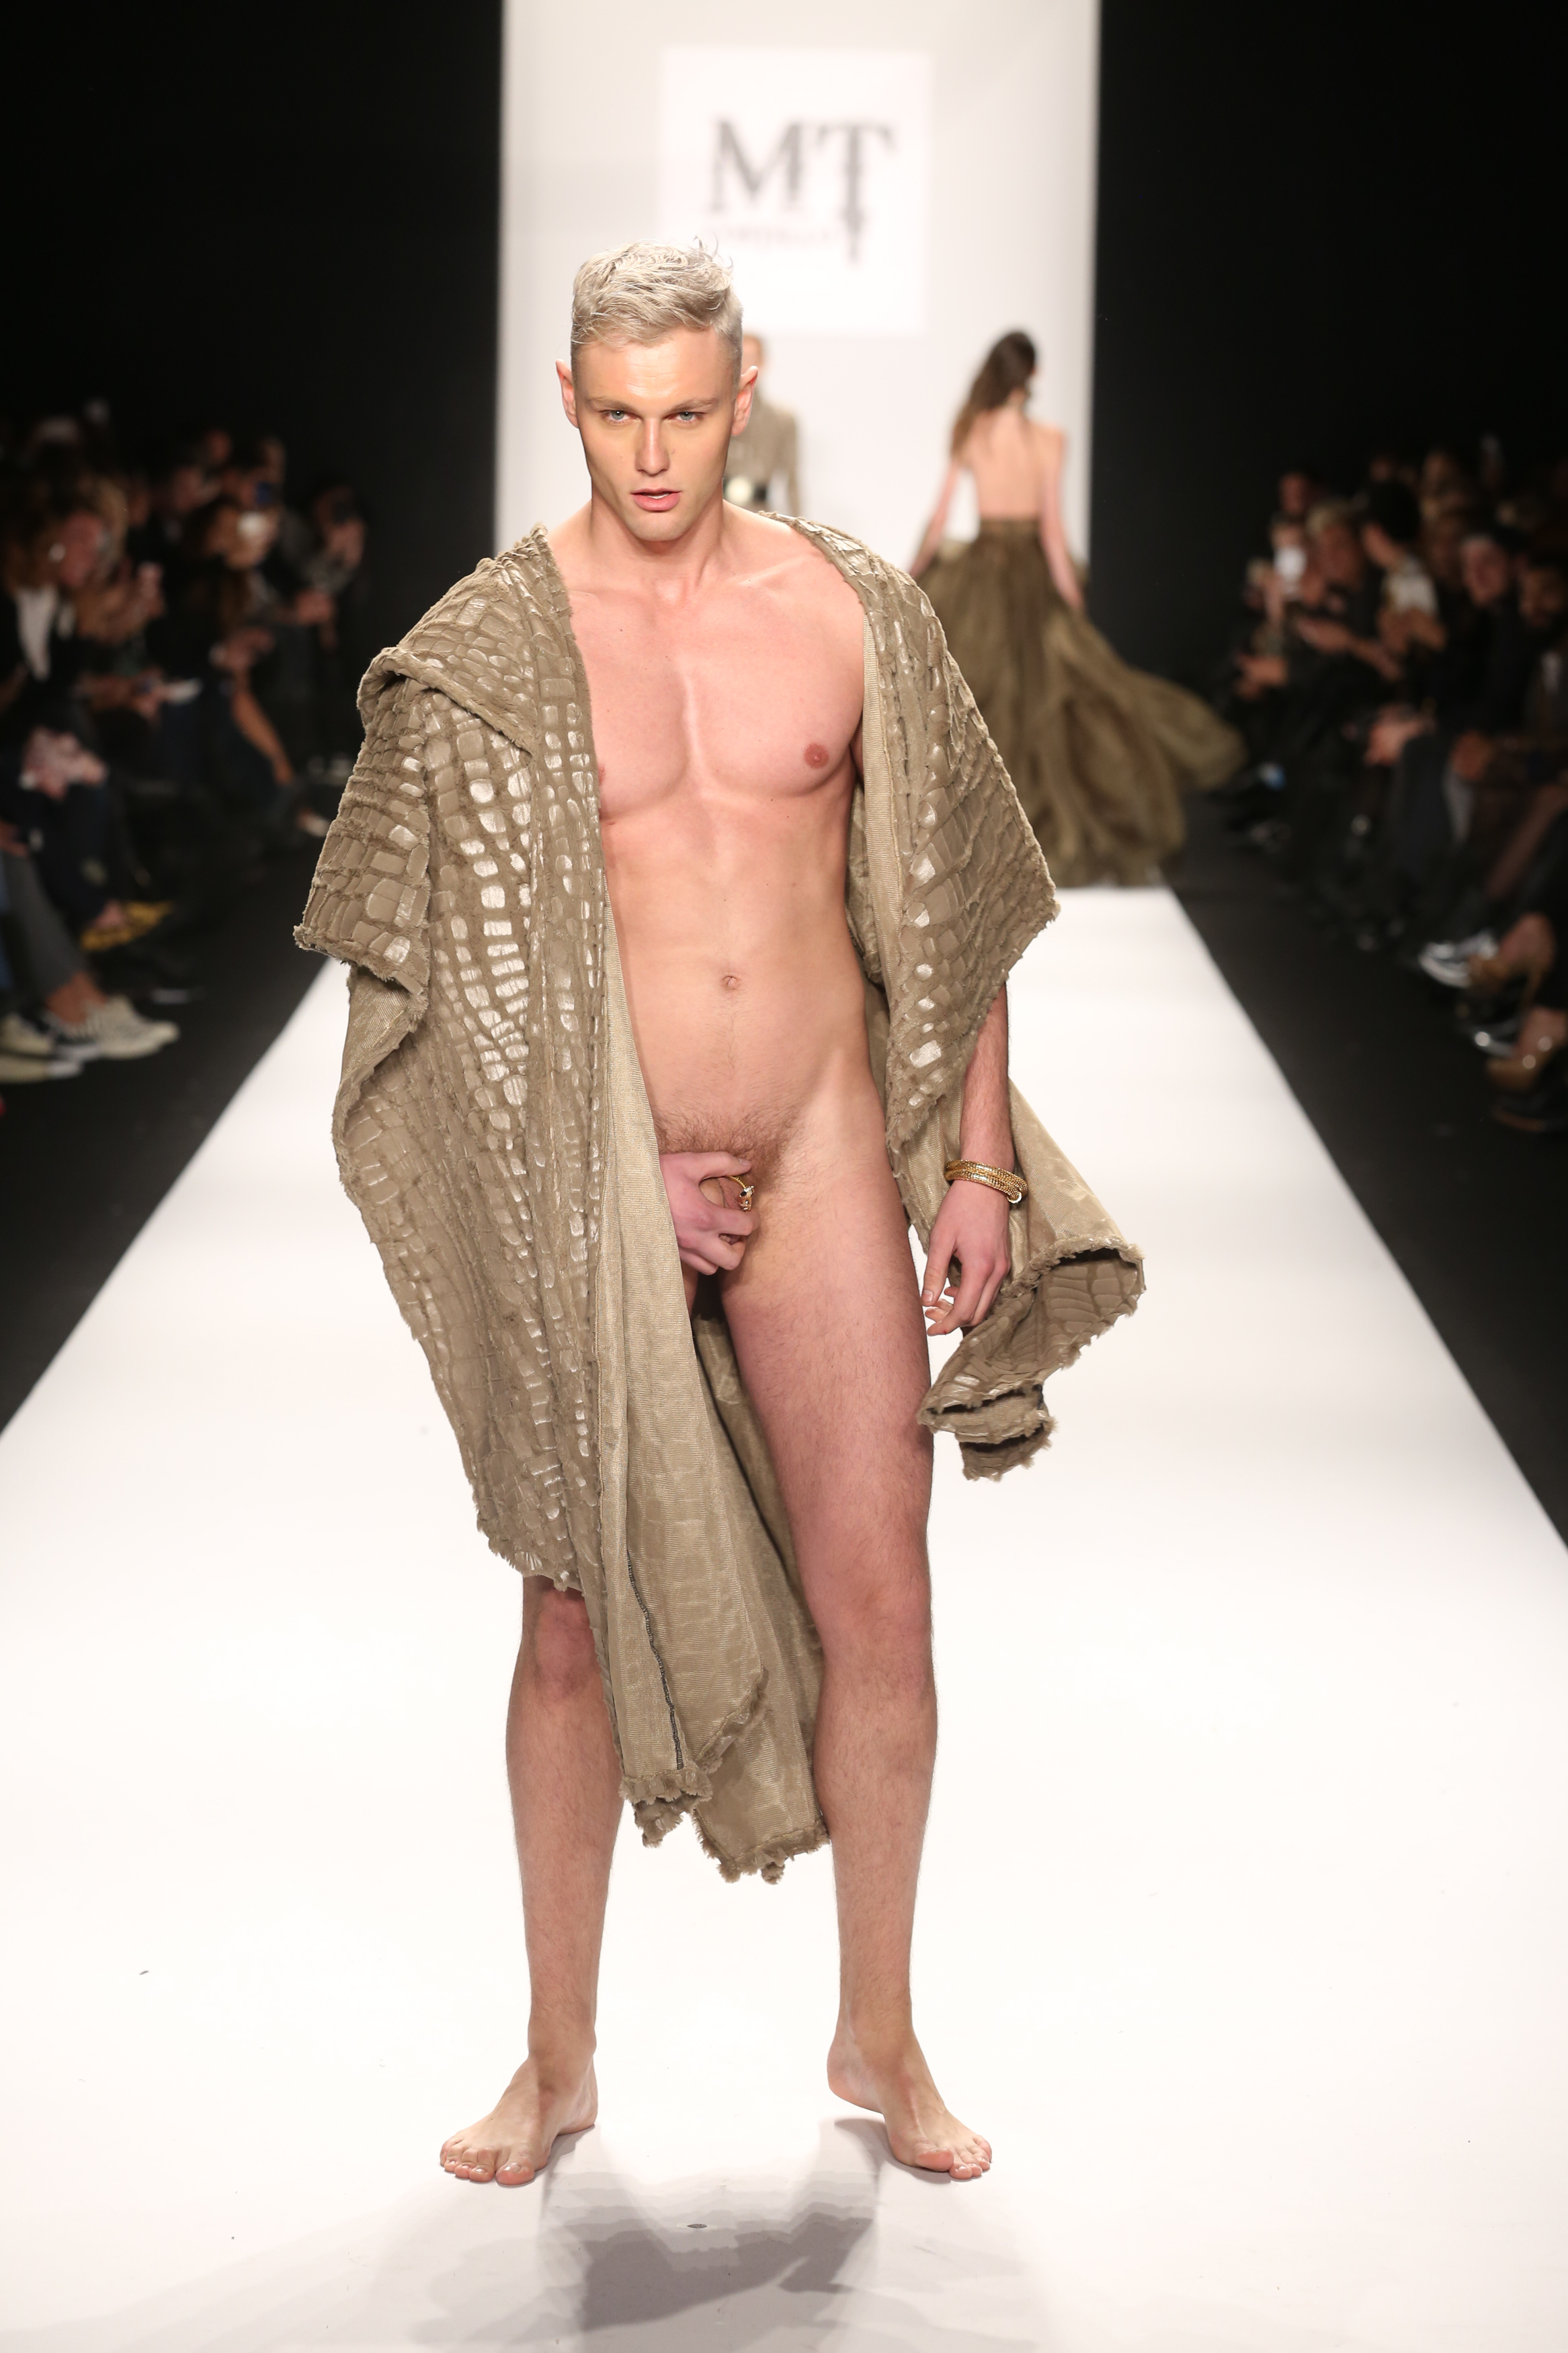 Naked Sexy Fashion Runway Shows